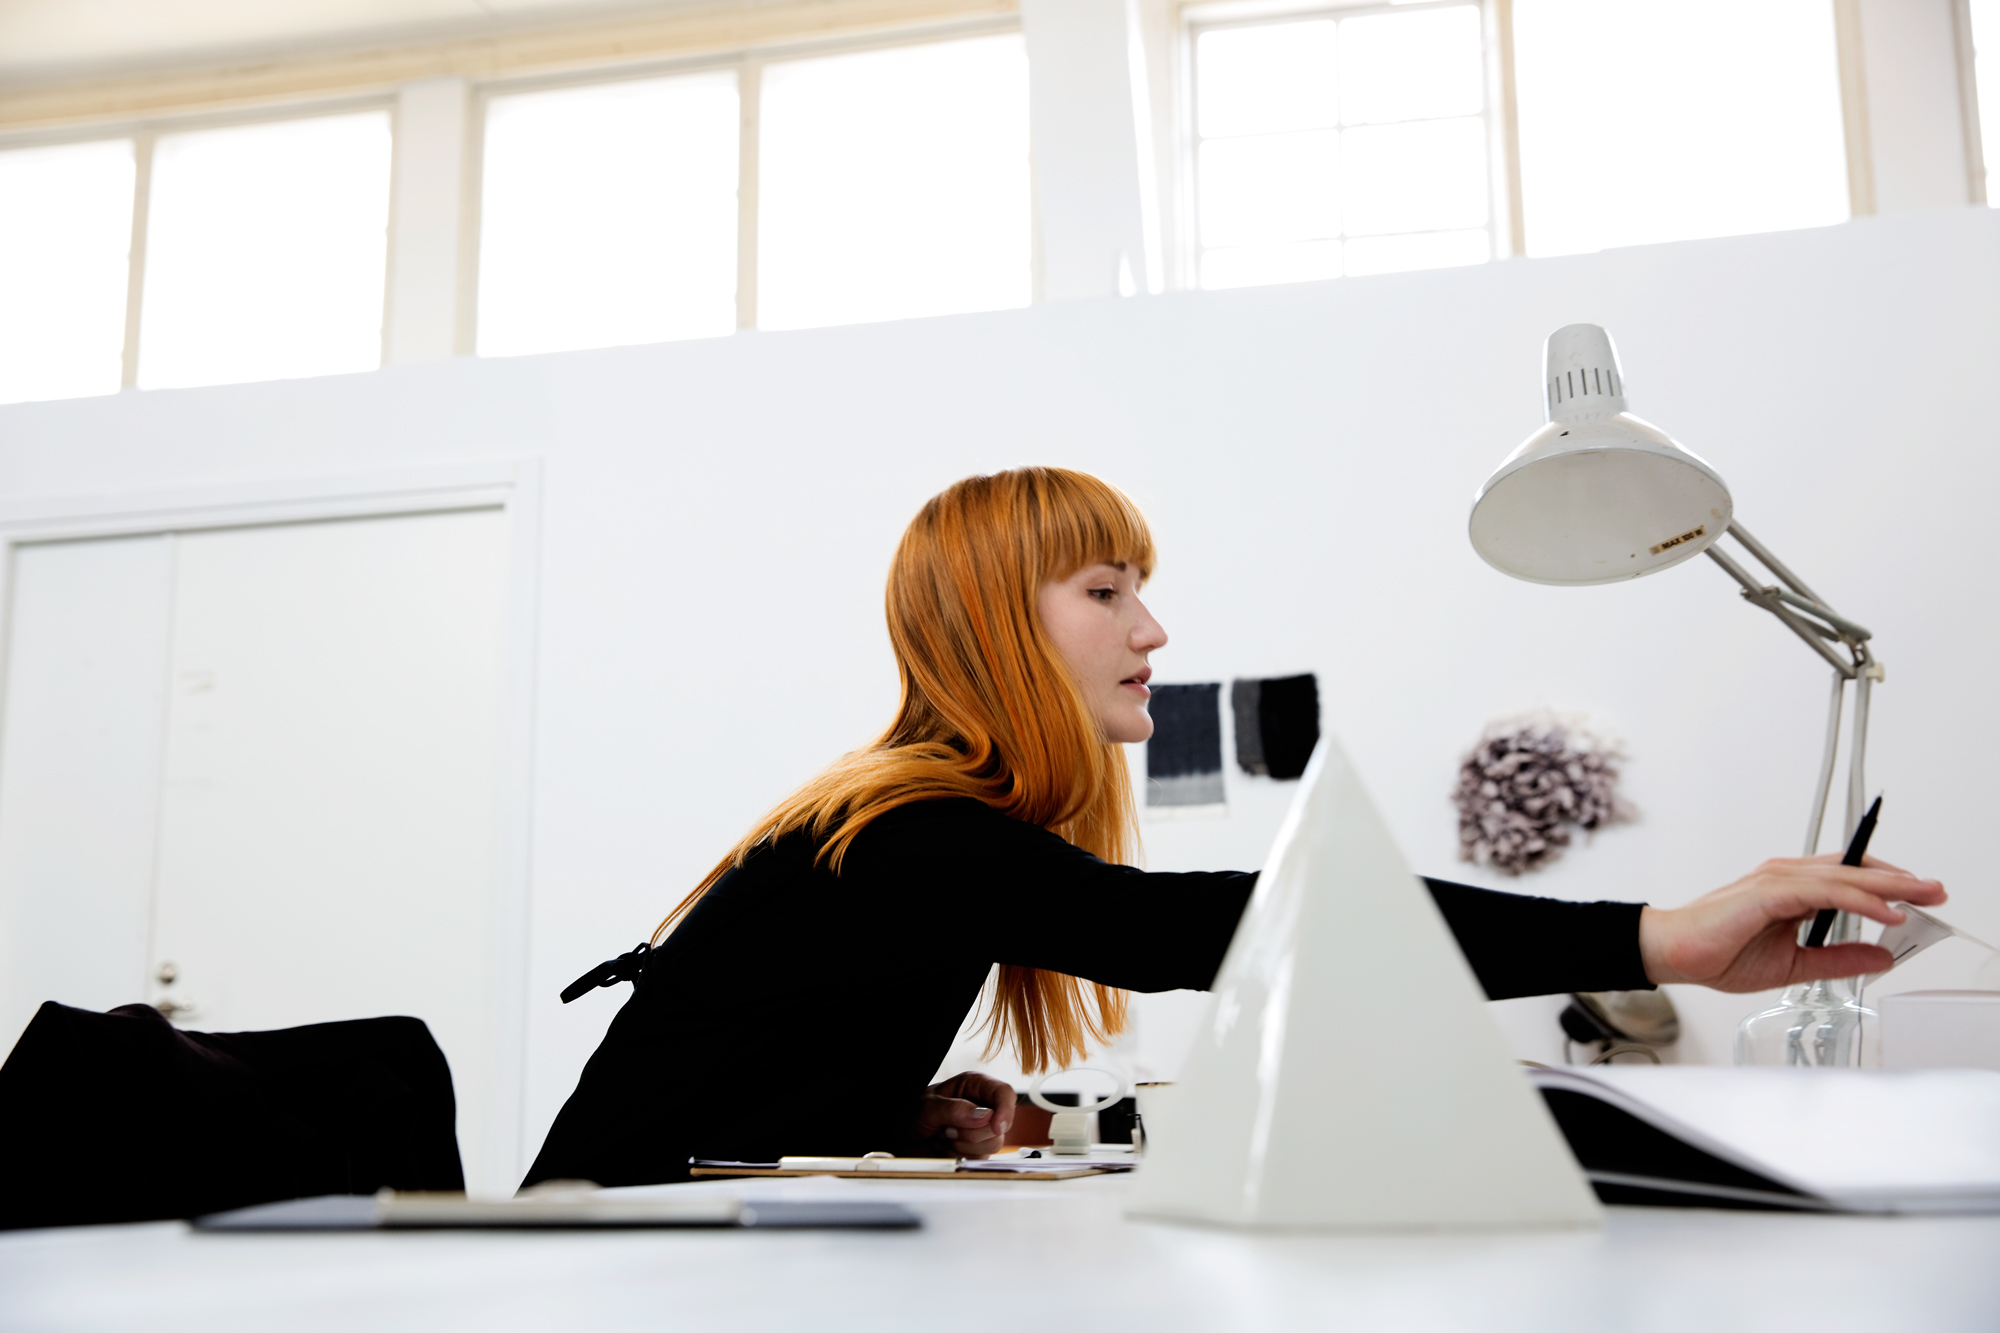 A red-haired woman in a black polo neck sits engrossed in work at a white desk in a white room with black details.